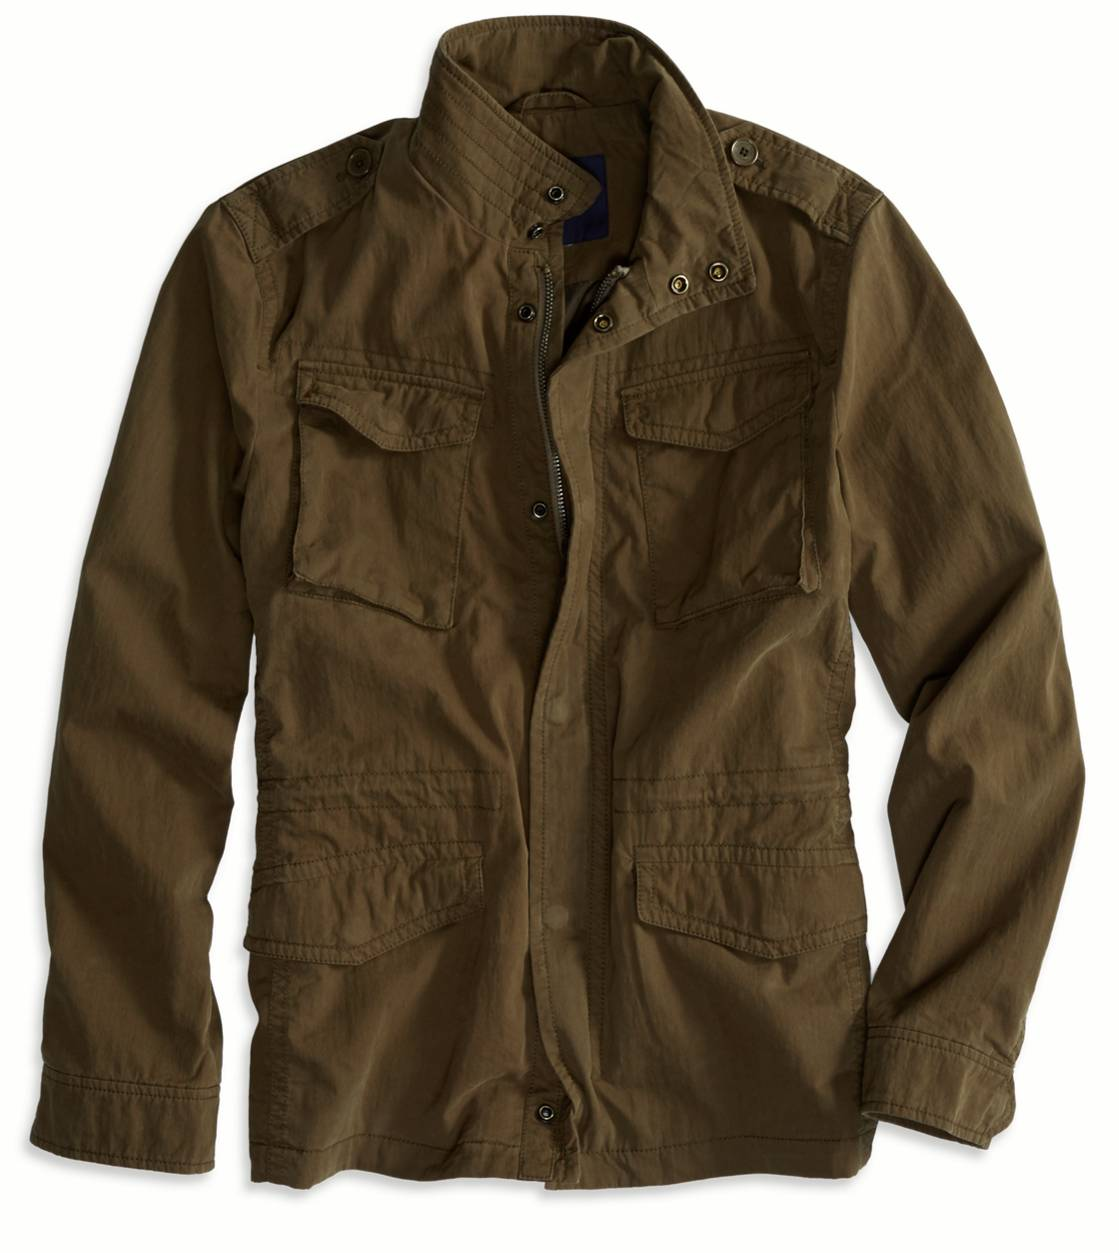 AE Military Jacket, Olive | American Eagle Outfitters